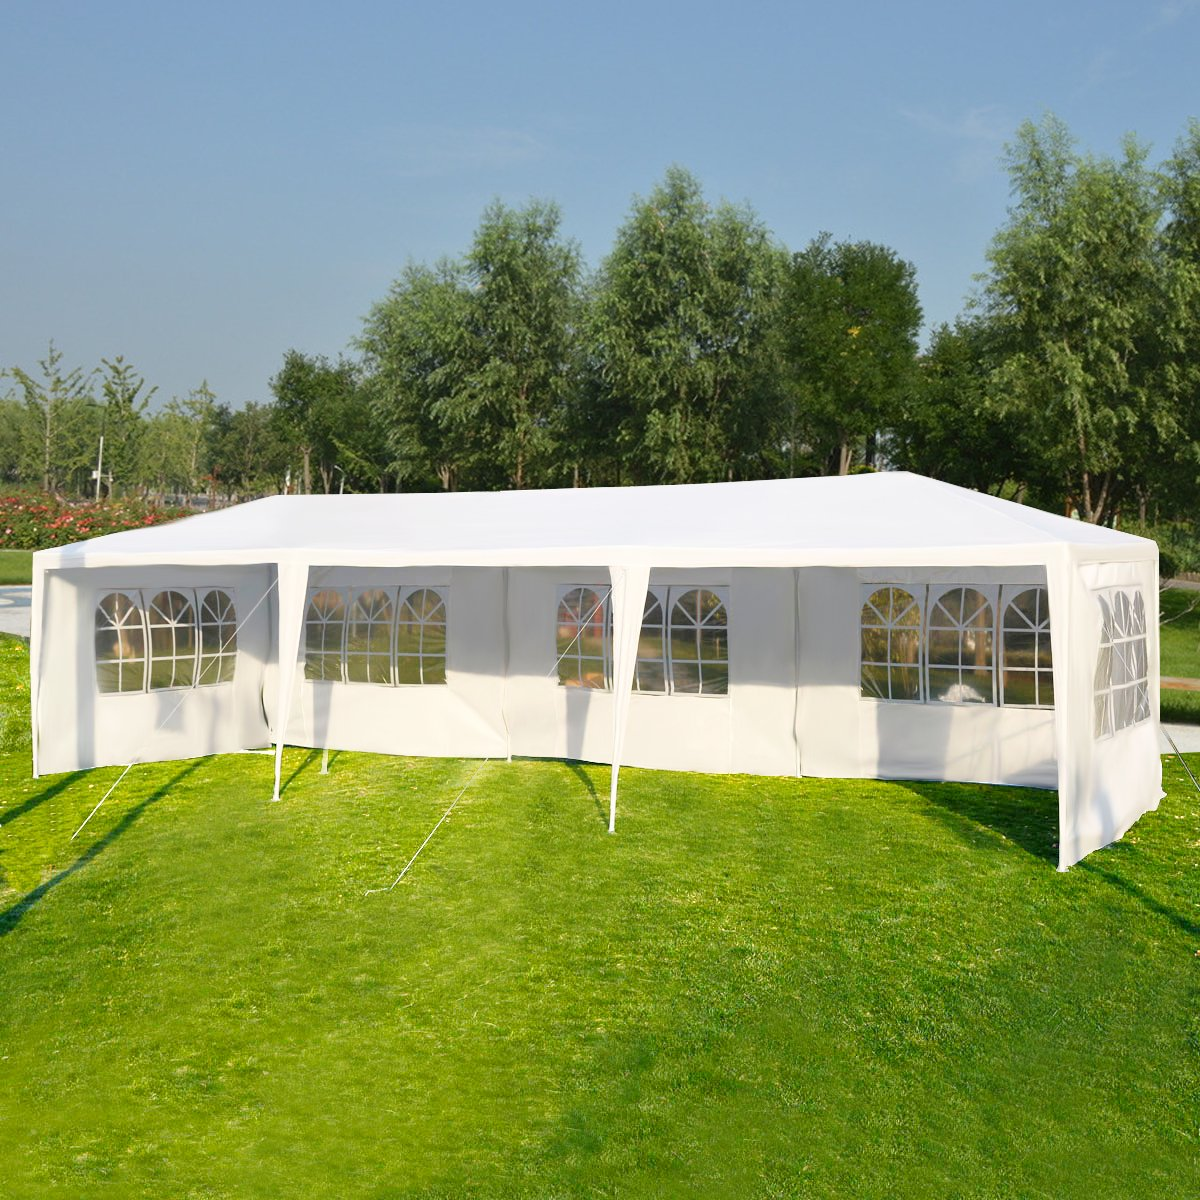 Beau Costway 10u0027x30u0027 Party Wedding Outdoor Patio Tent Canopy Heavy Duty Gazebo  Pavilion Event